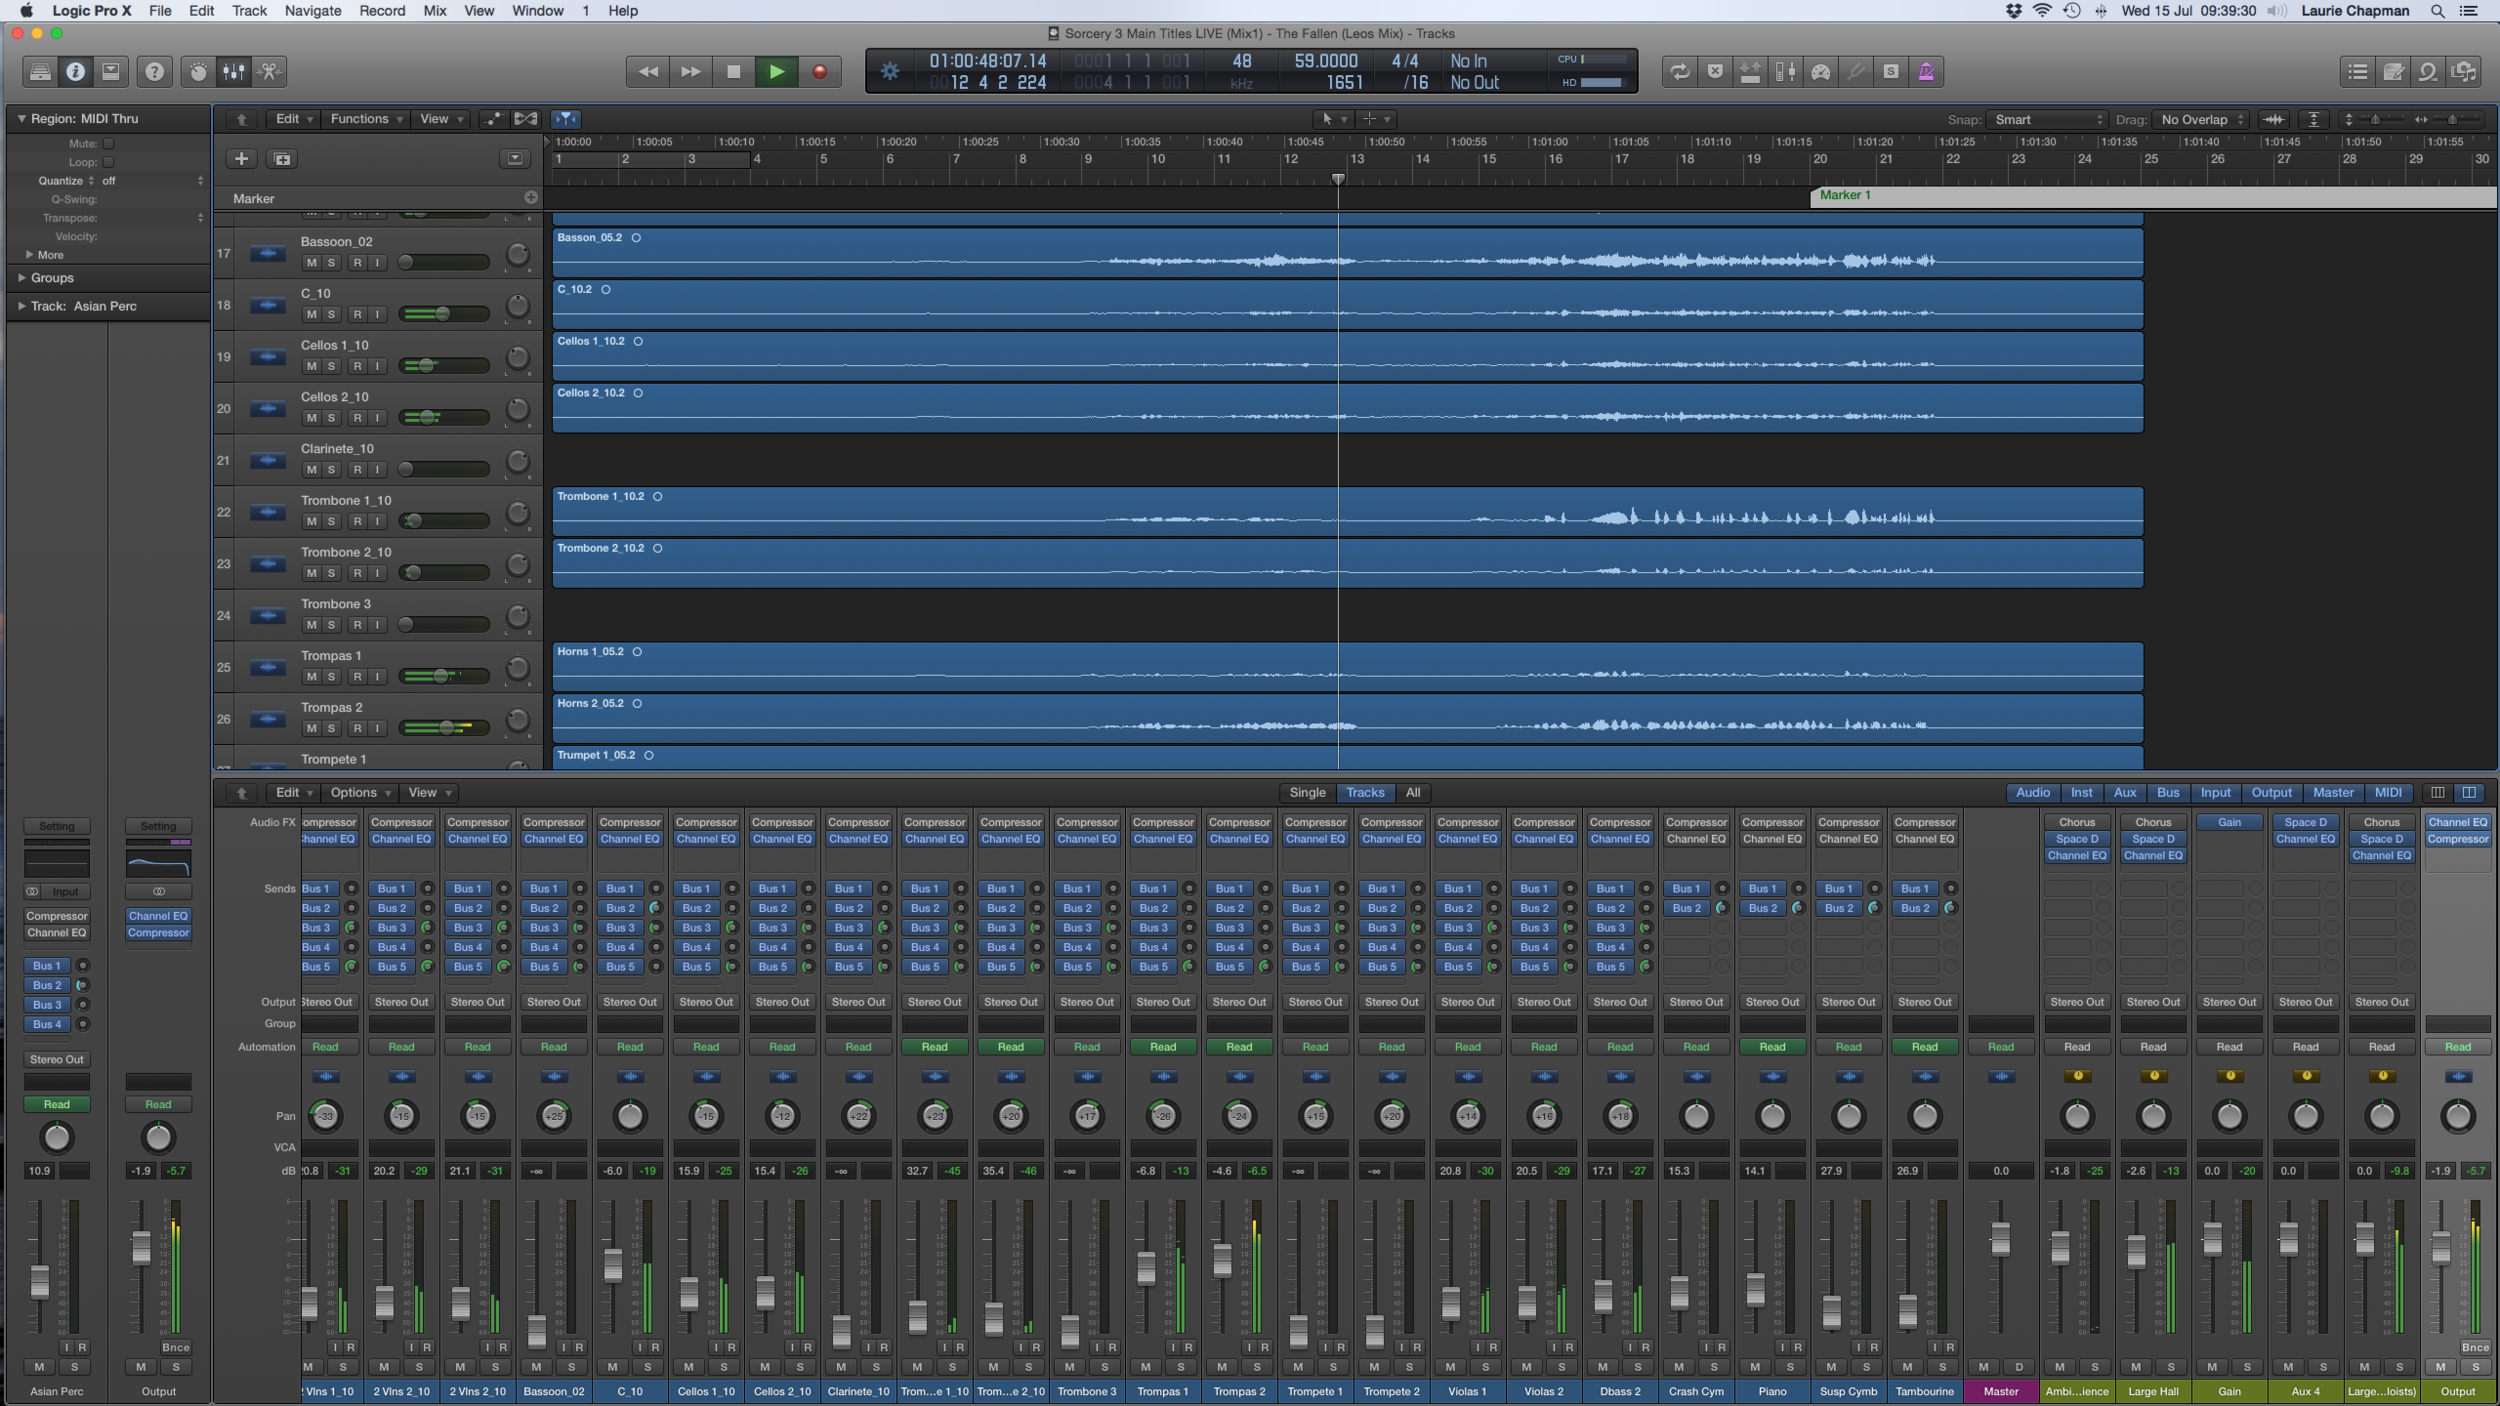 A screenshot from the mixing session. (Click to enlarge)